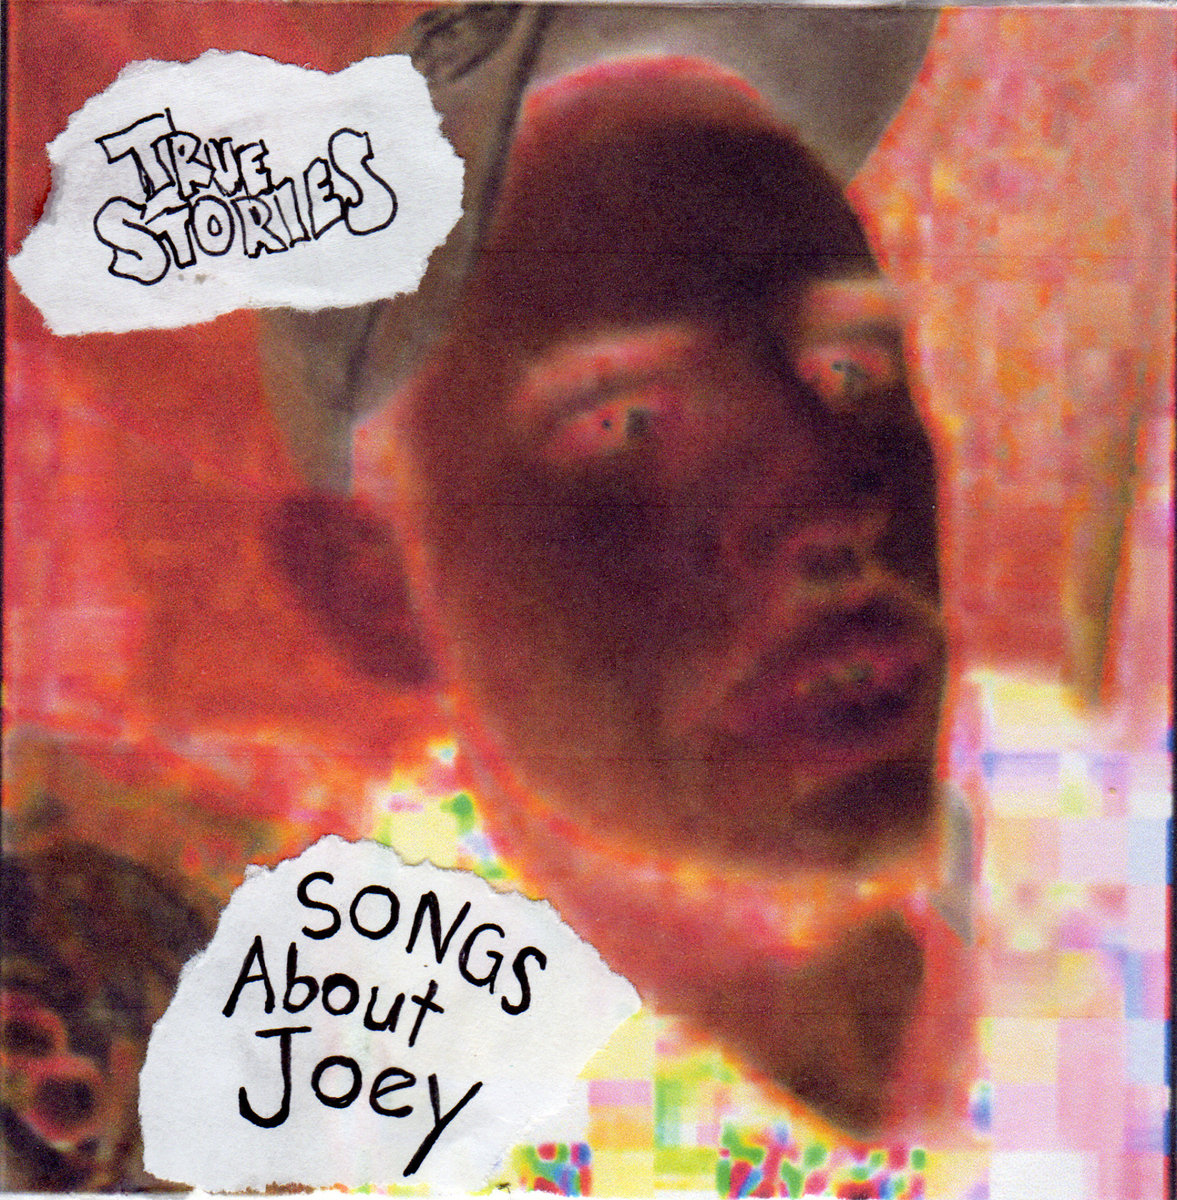 Songs About Joey | True Stories